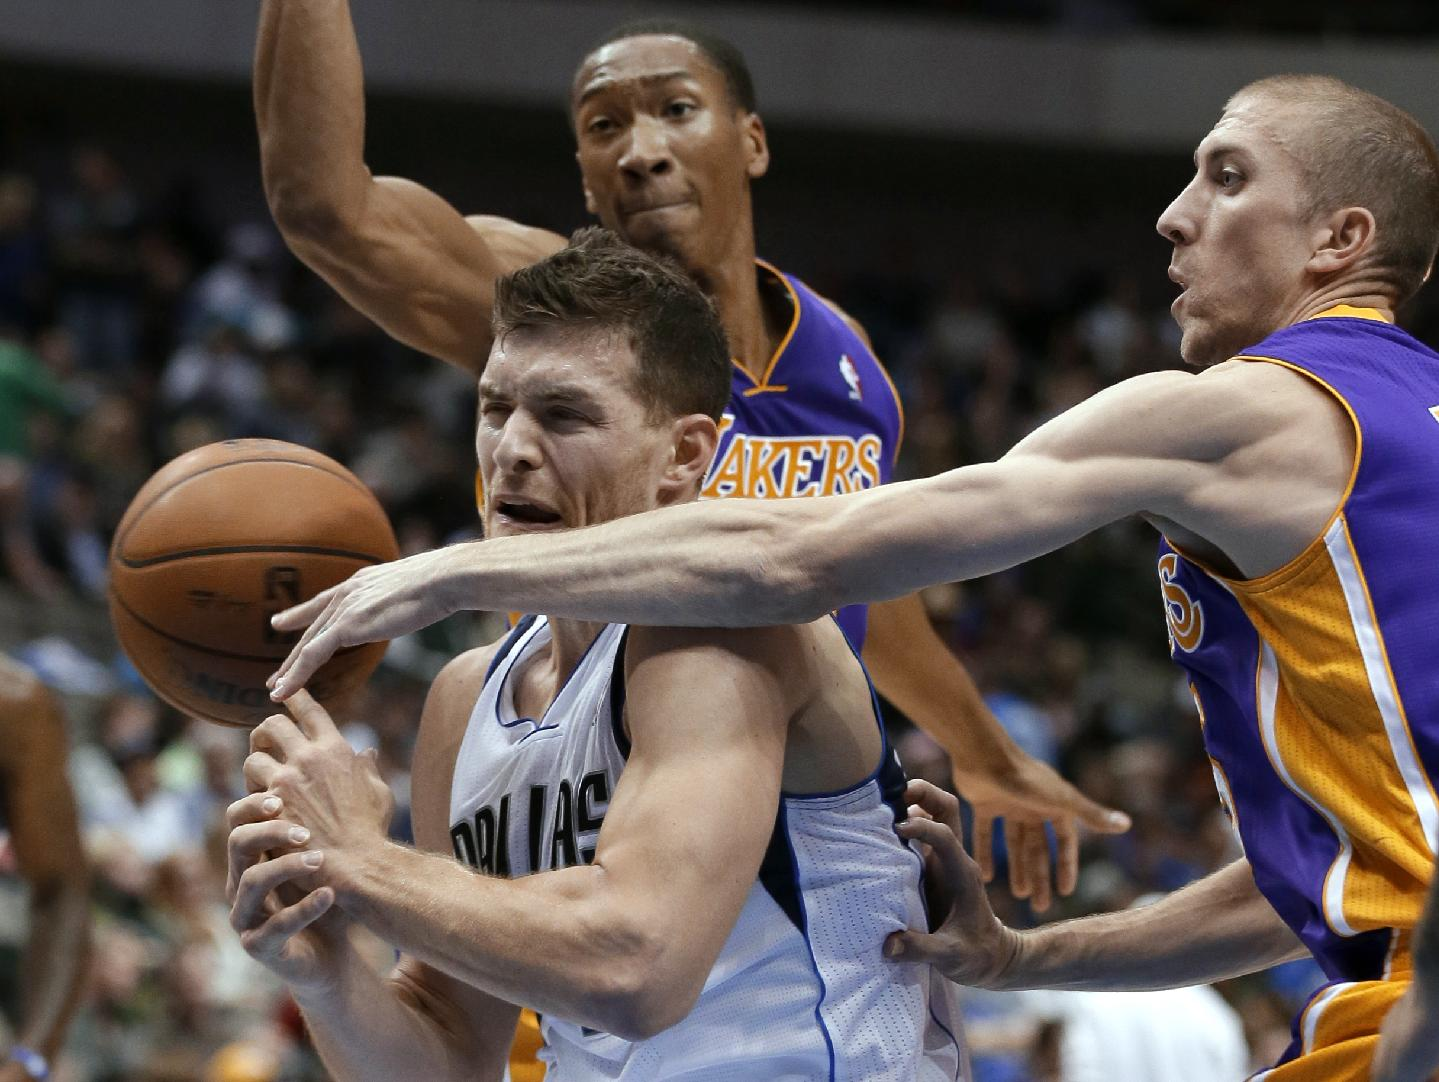 Dallas Mavericks' Gal Mekel, left, of Israel, has the ball knocked away on a drive to the basket by Los Angeles Lakers' Steve Blake, right, as Wesley Johnson, rear, helps defend during the second half of an NBA basketball game, Tuesday, Nov. 5, 2013, in Dallas. The Mavericks won 123-104